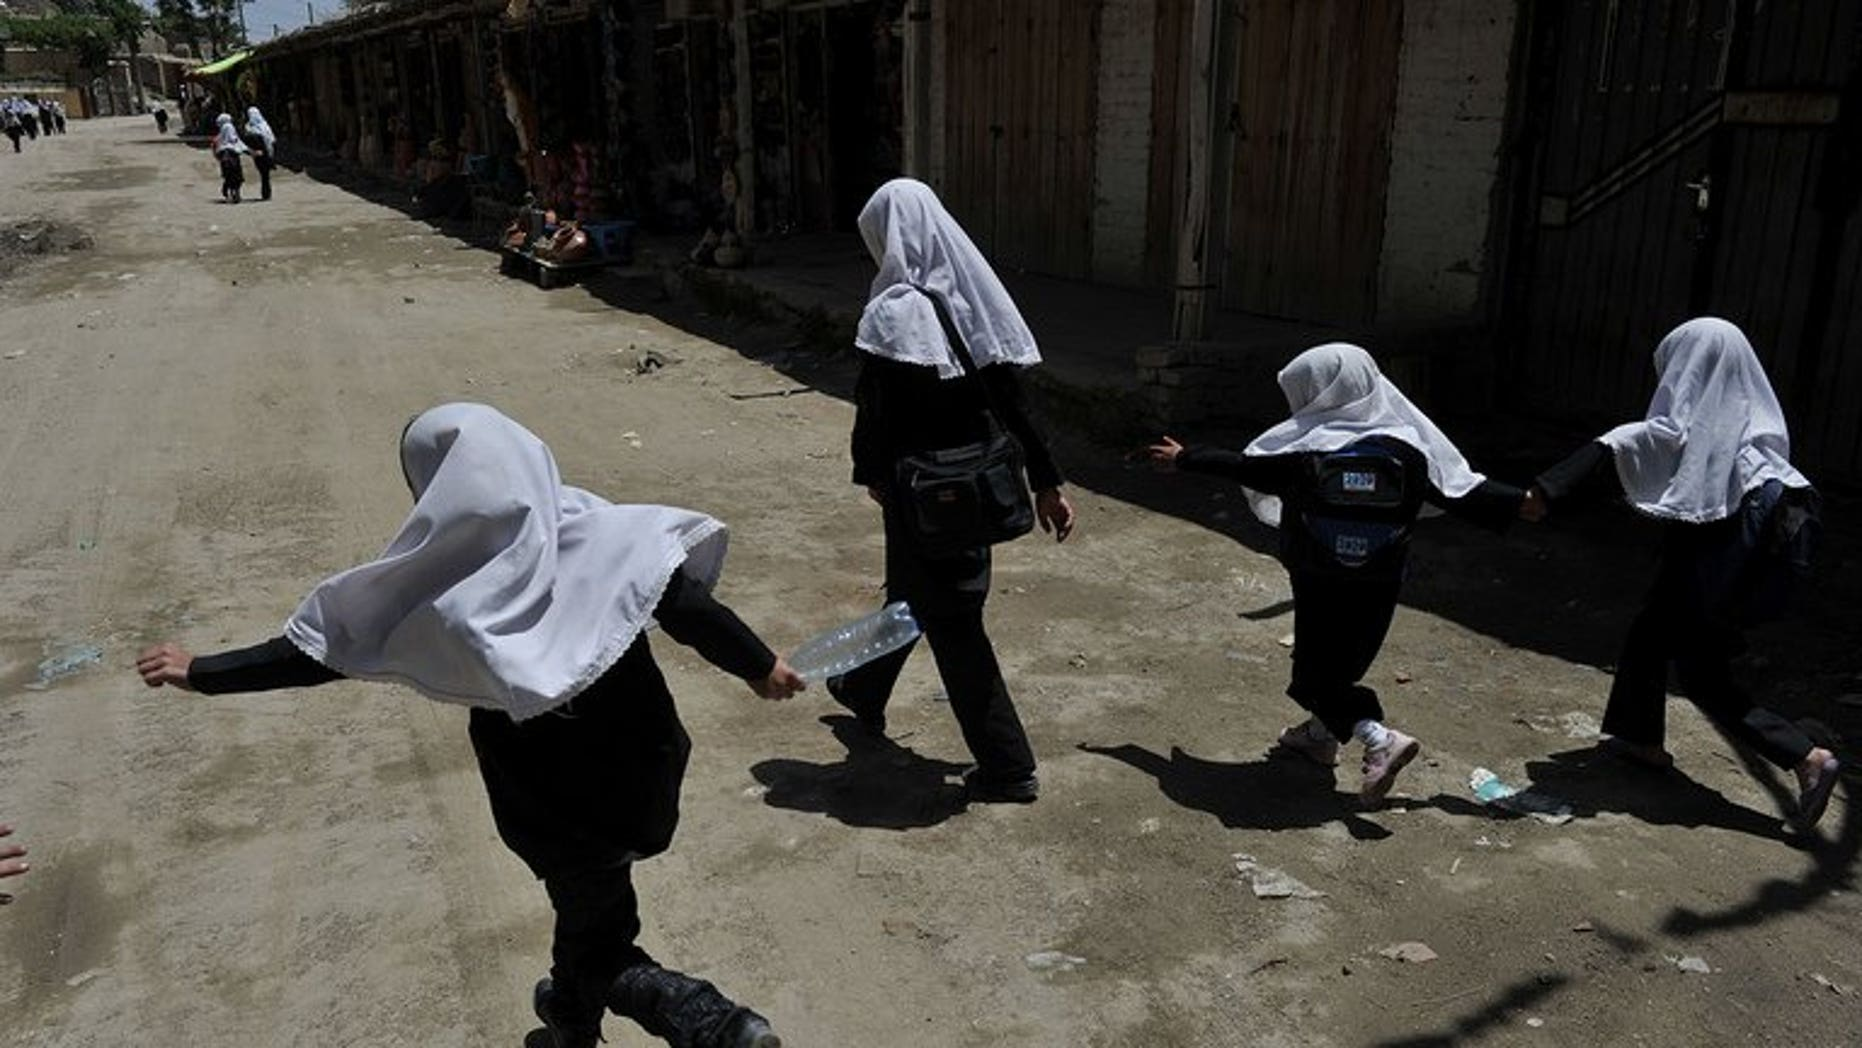 Afghan schoolgirls in Istalif, north of Kabul, on May 29, 2012. The education chief of an Indonesian city sparked outrage Wednesday after proposing that teenage schoolgirls should undergo virginity tests to enter senior high school.